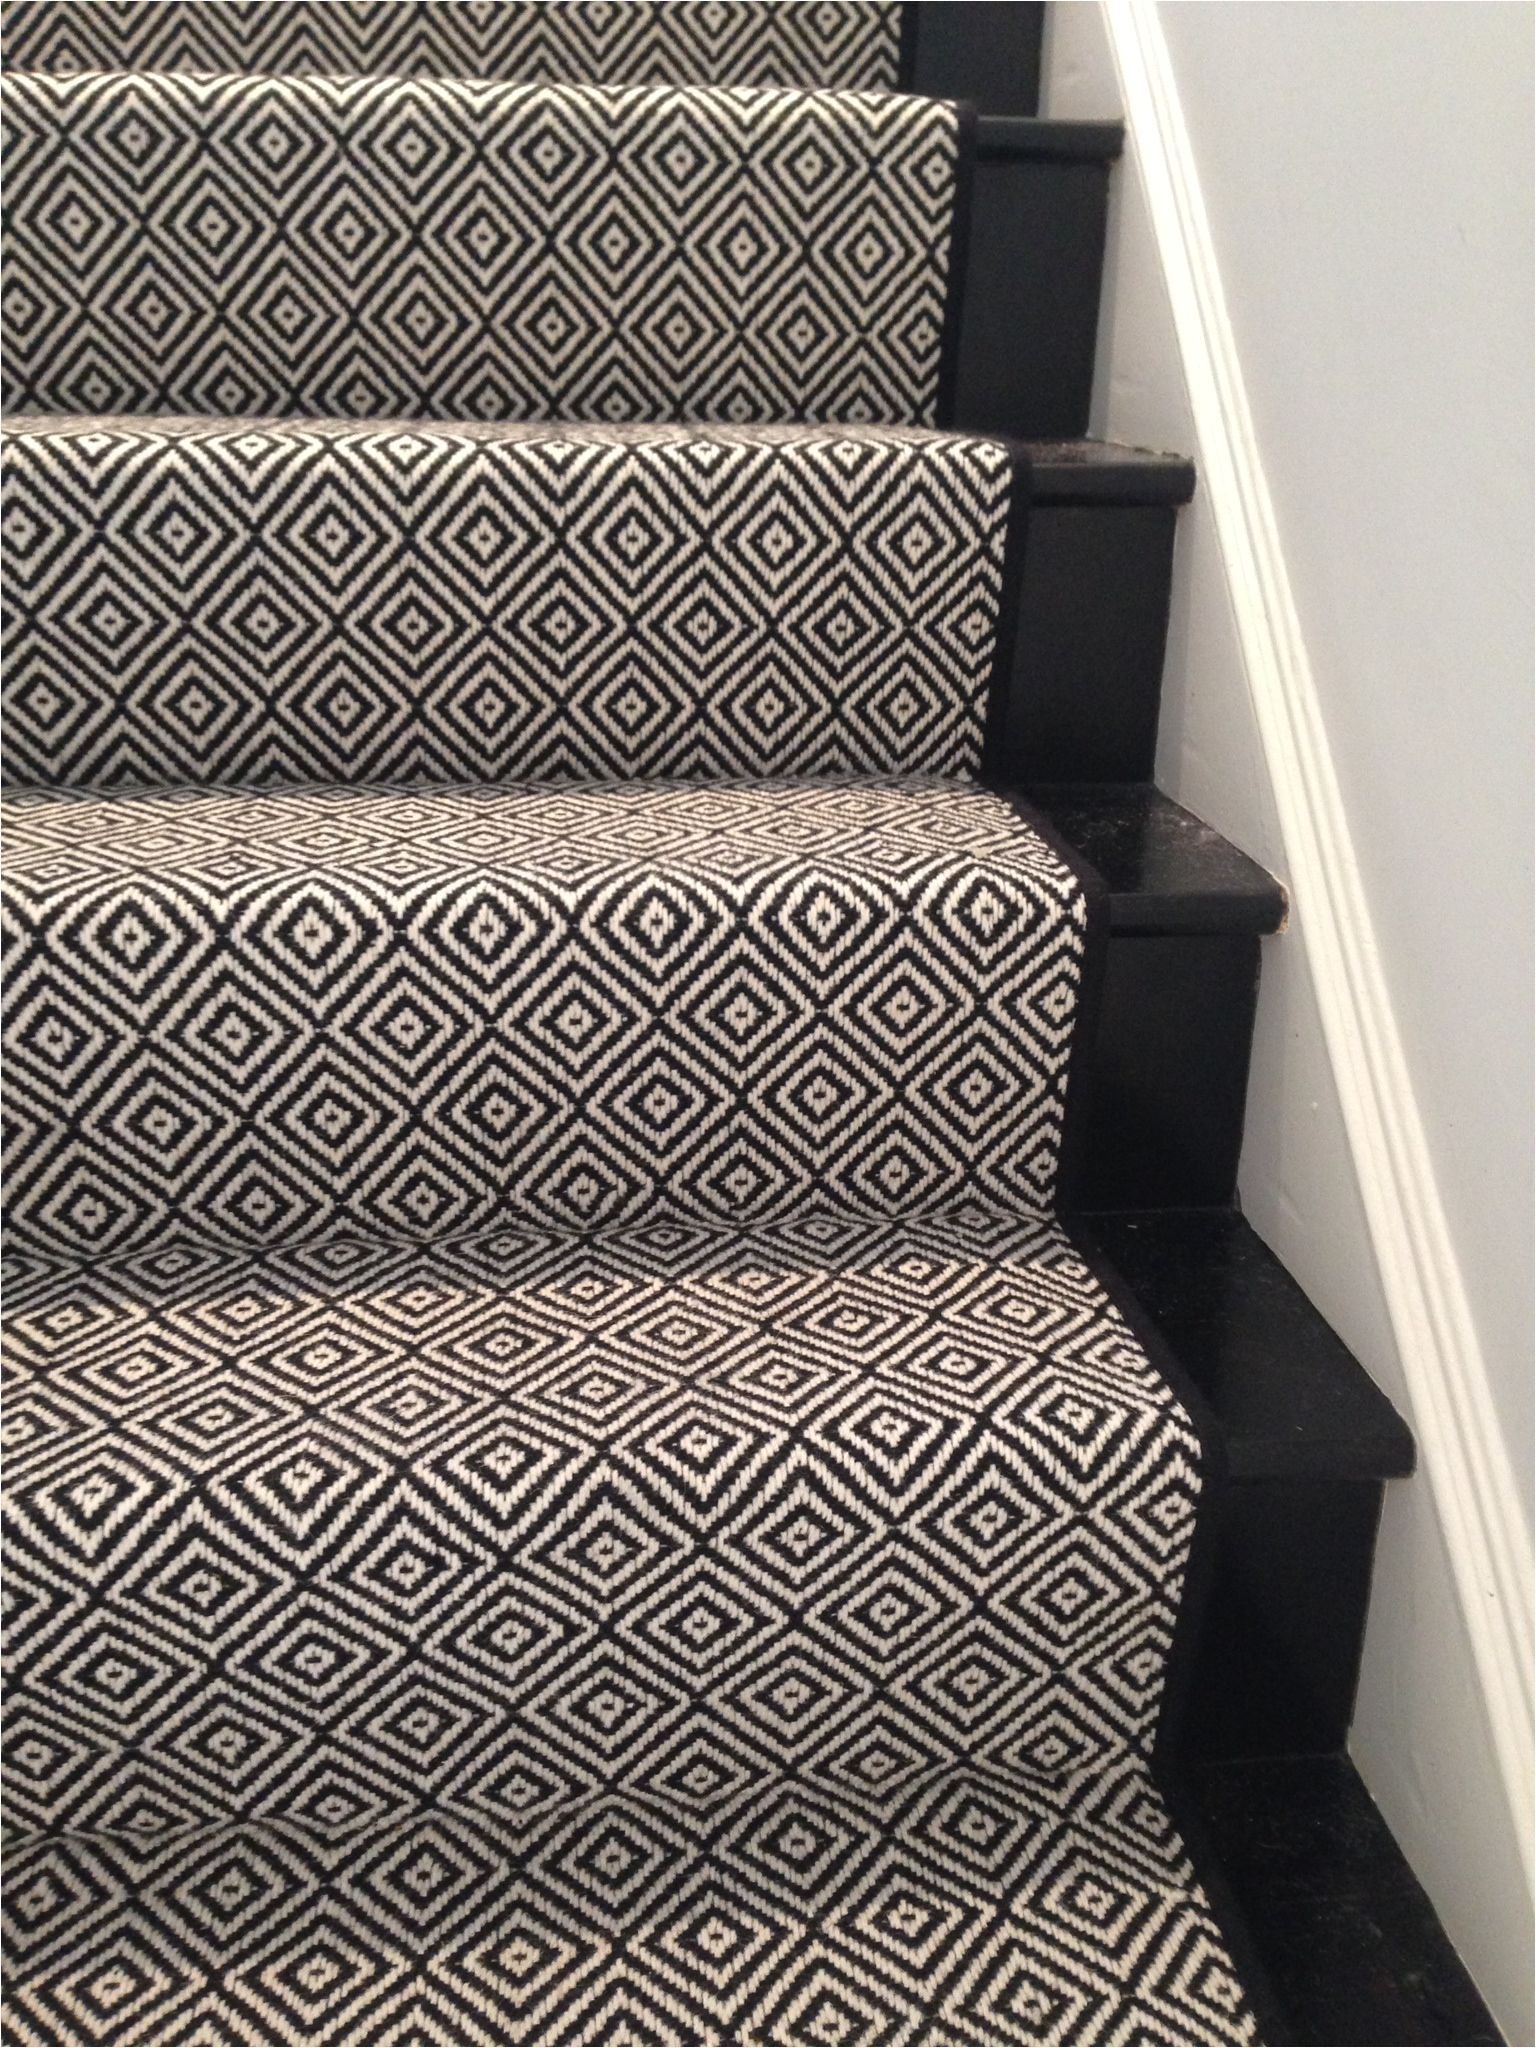 Best Black And Beige Runner Rug Carpet Stairs Hallway Carpet 400 x 300